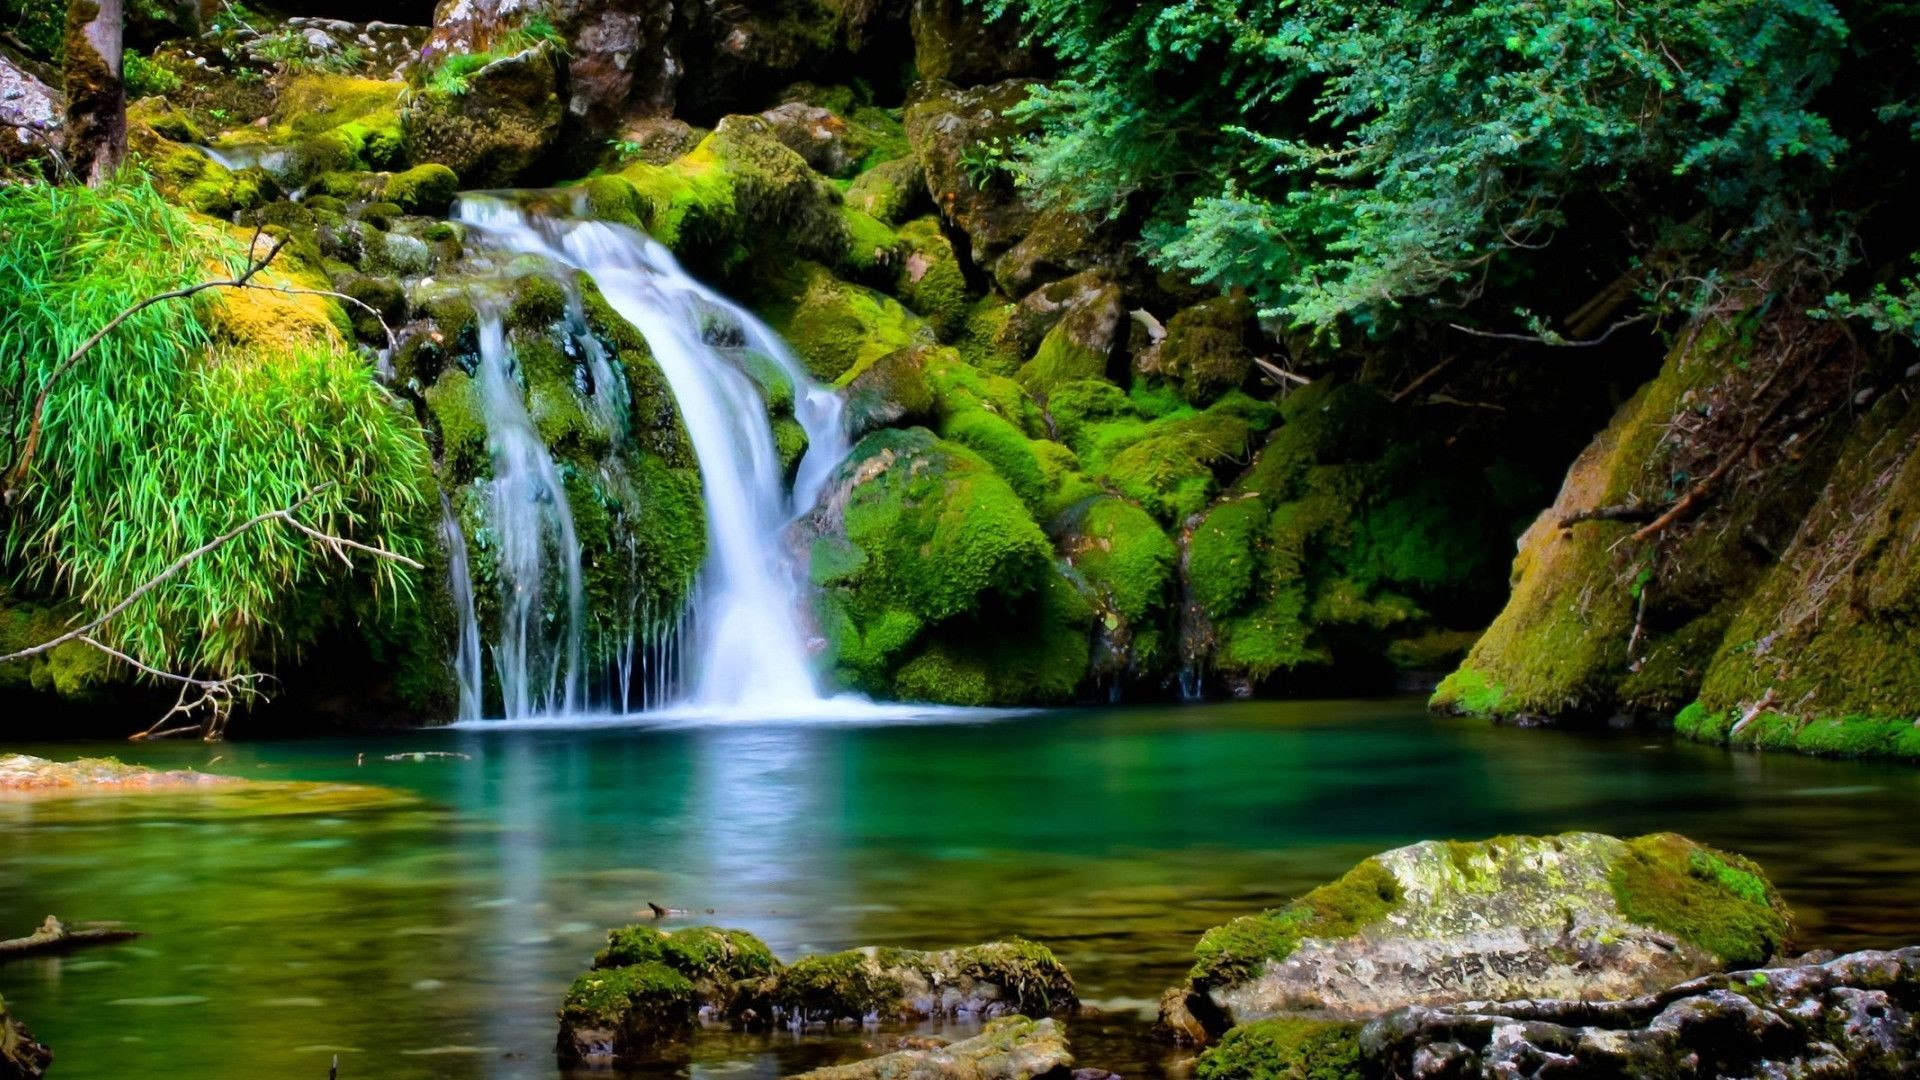 Colourful backgrounds 59 images - Nature wallpaper collection zip ...